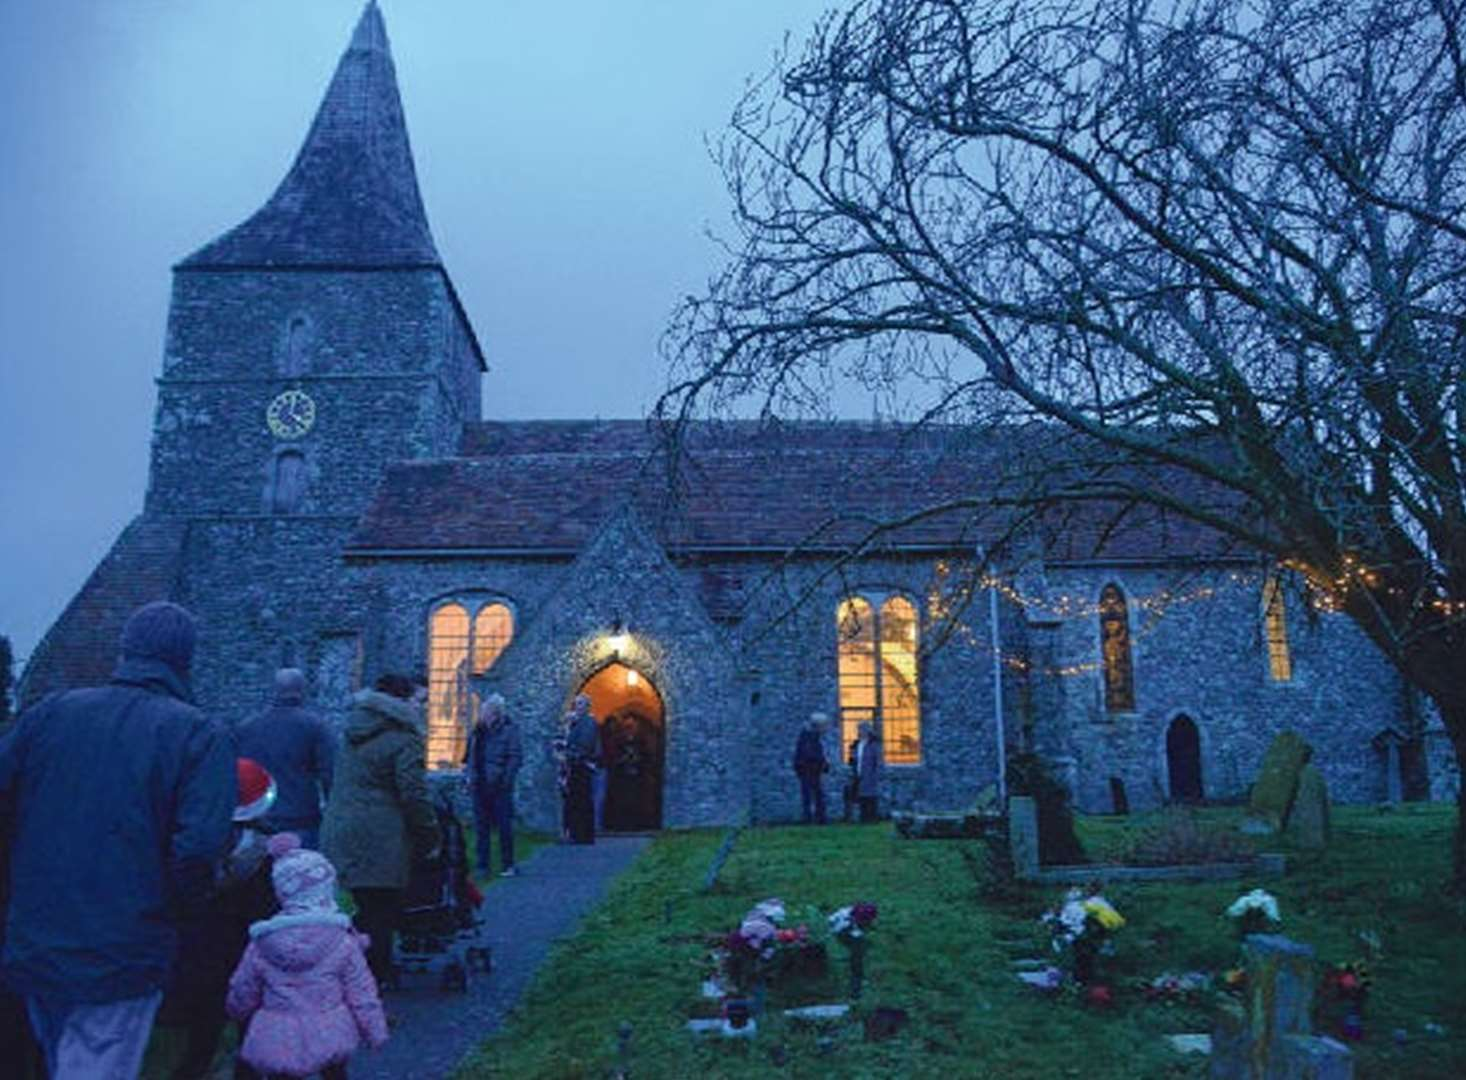 Mystery of human ashes left in church